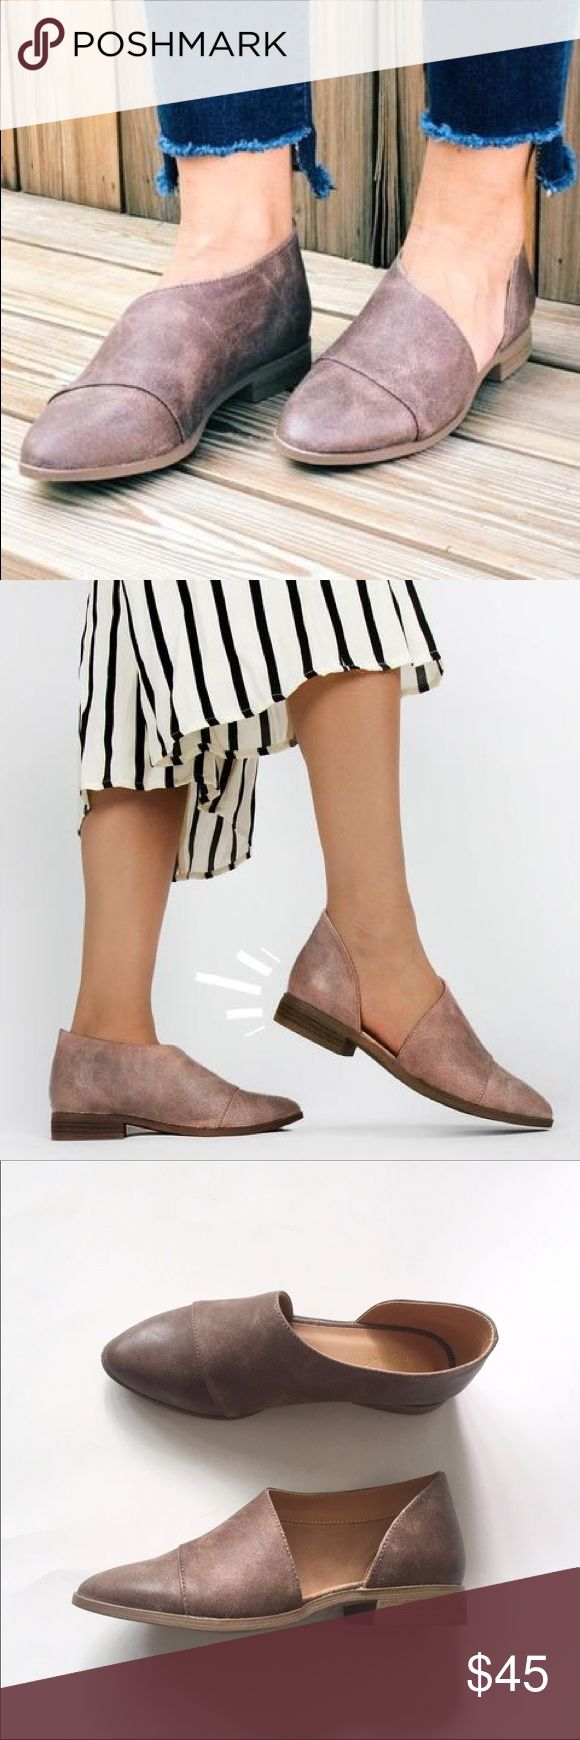 🆕 HAYDEN Shank Ballerina Flat in Taupe/Nutmeg Sold out everywhere!!! Taupe/Nutmeg color. Man made distressed leather with oil finish. 1 inch stacked heel. Wrap around design. Closed almond toe. Cushioned padded insole for comfort. Runs TRUE TO SIZE. Also available in STONE. No trades. Price is FIRM. Shoes Flats & Loafers